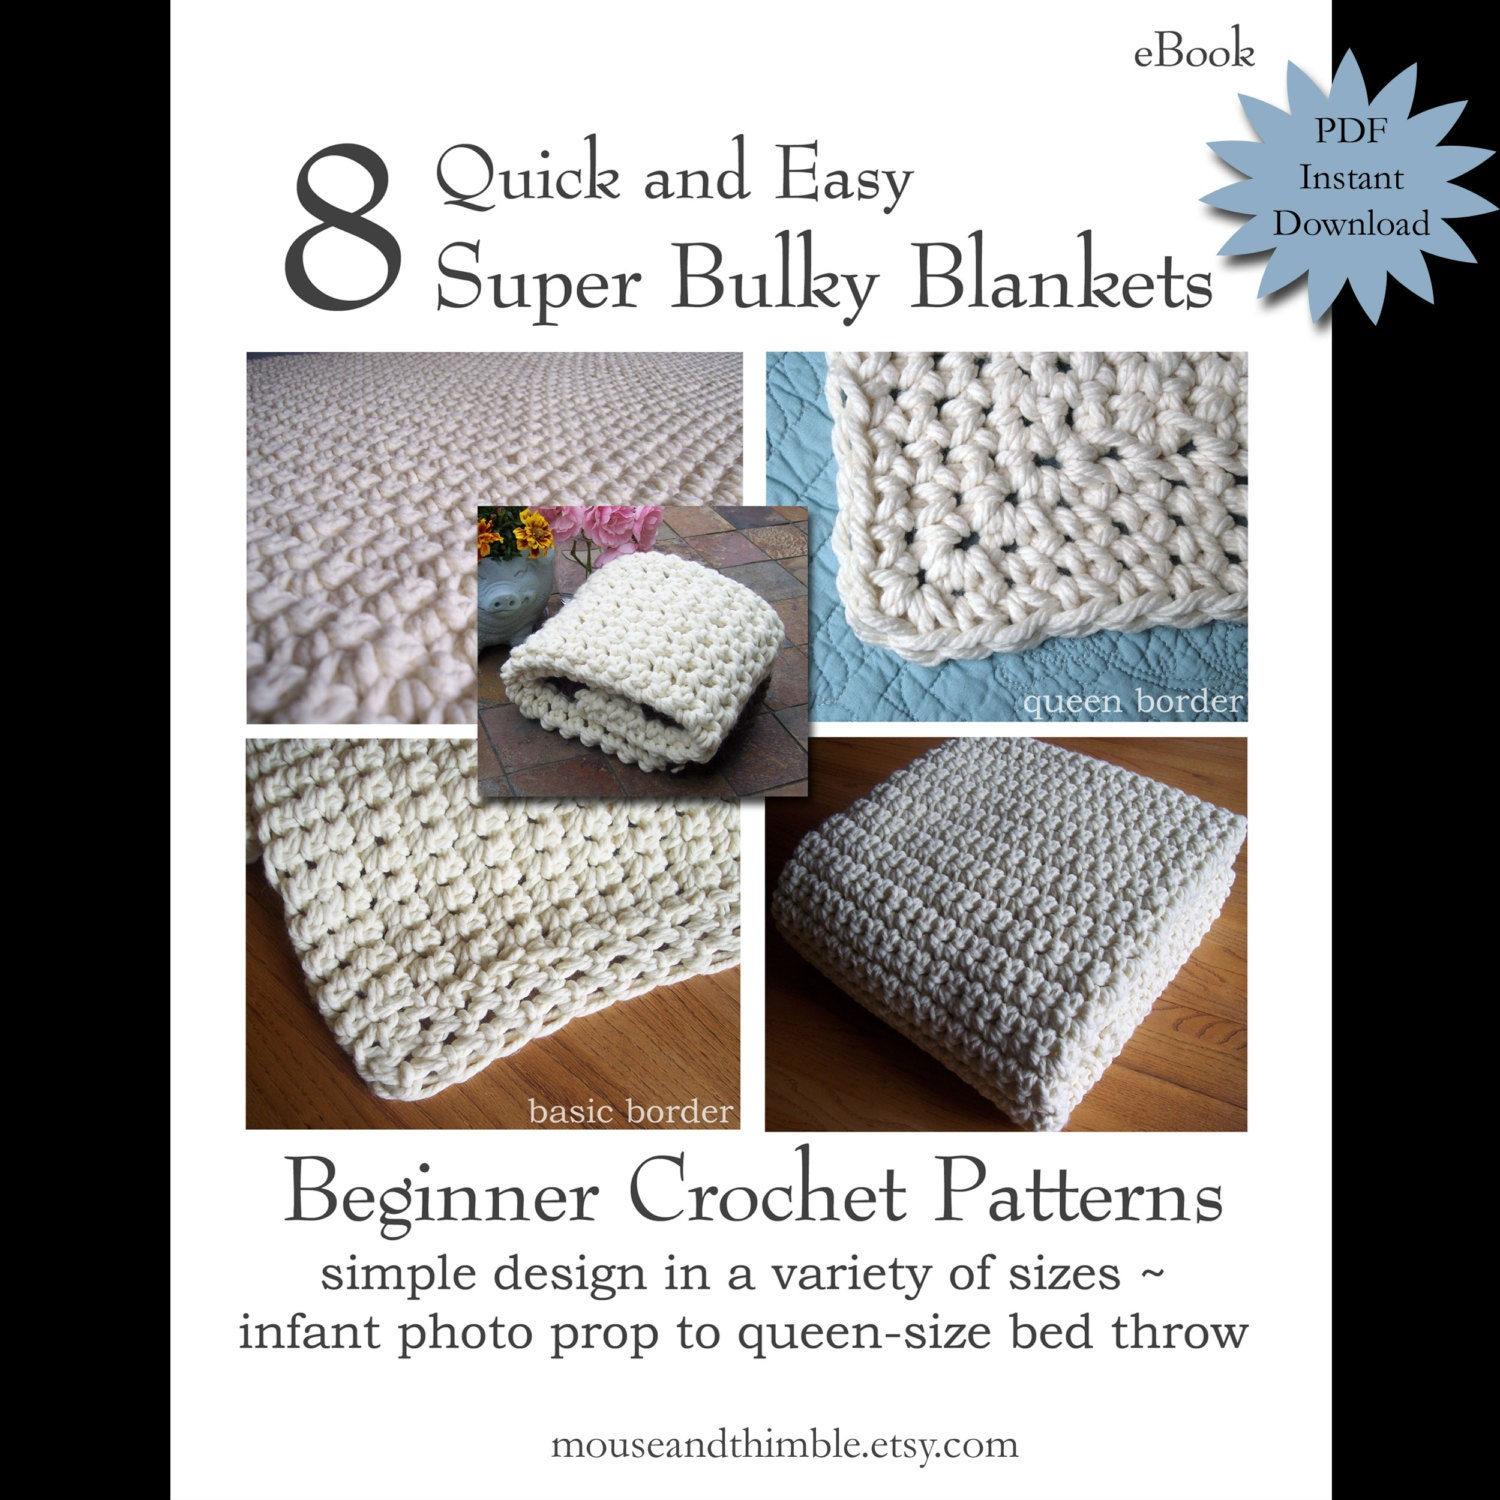 Quick Crochet Patterns For Beginners : Quick & Bulky Blankets Beginner Crochet PATTERNS eBOOK 8